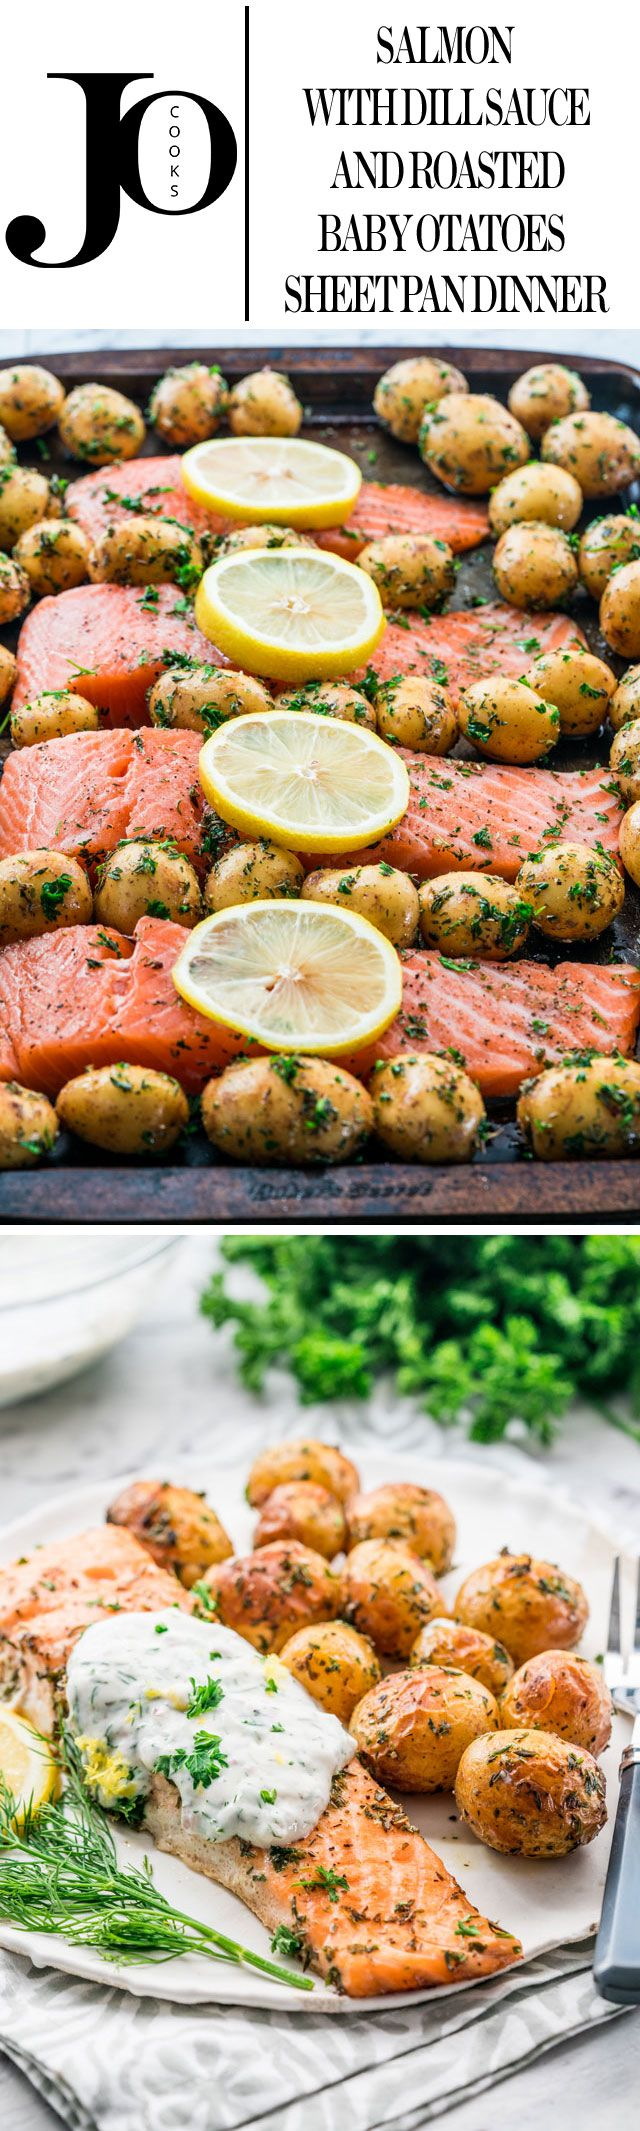 Sheet pan dinners were never easier than this salmon with dill sauce and roasted baby potatoes. Dinner in 30 minutes that's healthy, minimum prep time required and easy cleanup.